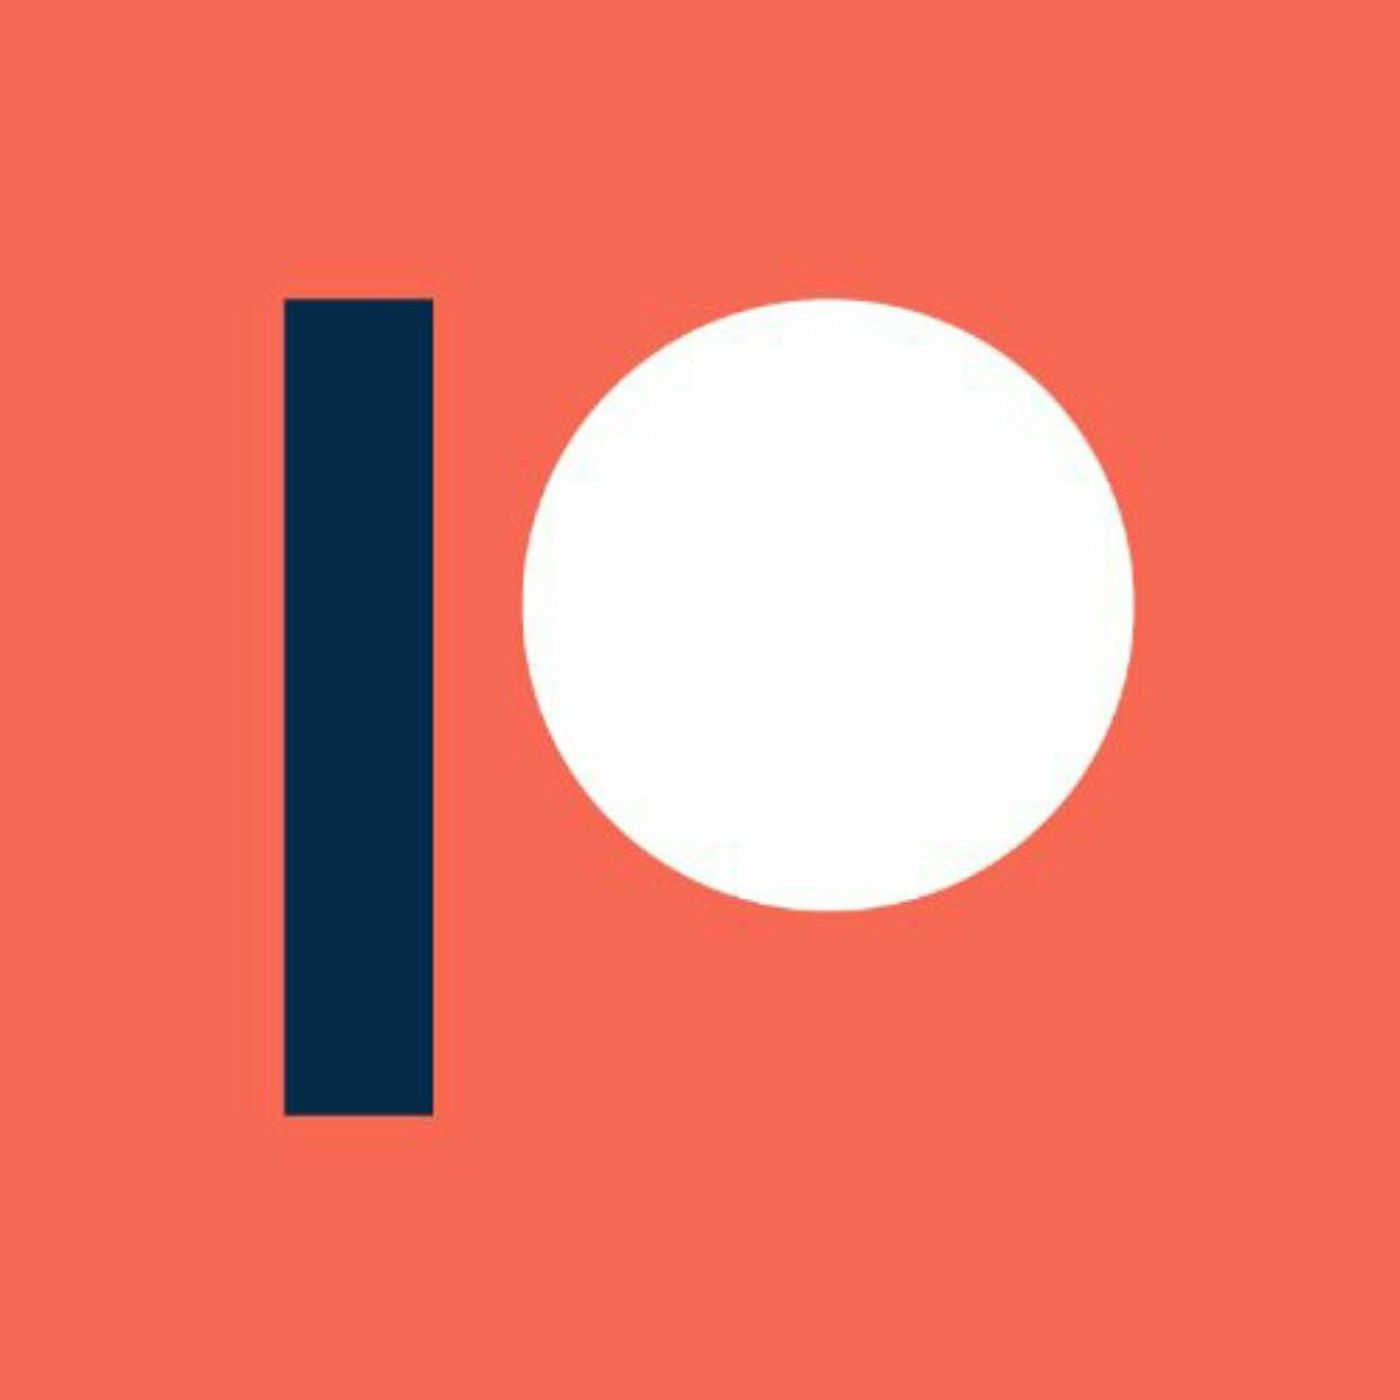 Patreon changes have creators concerned they'll lose income ...